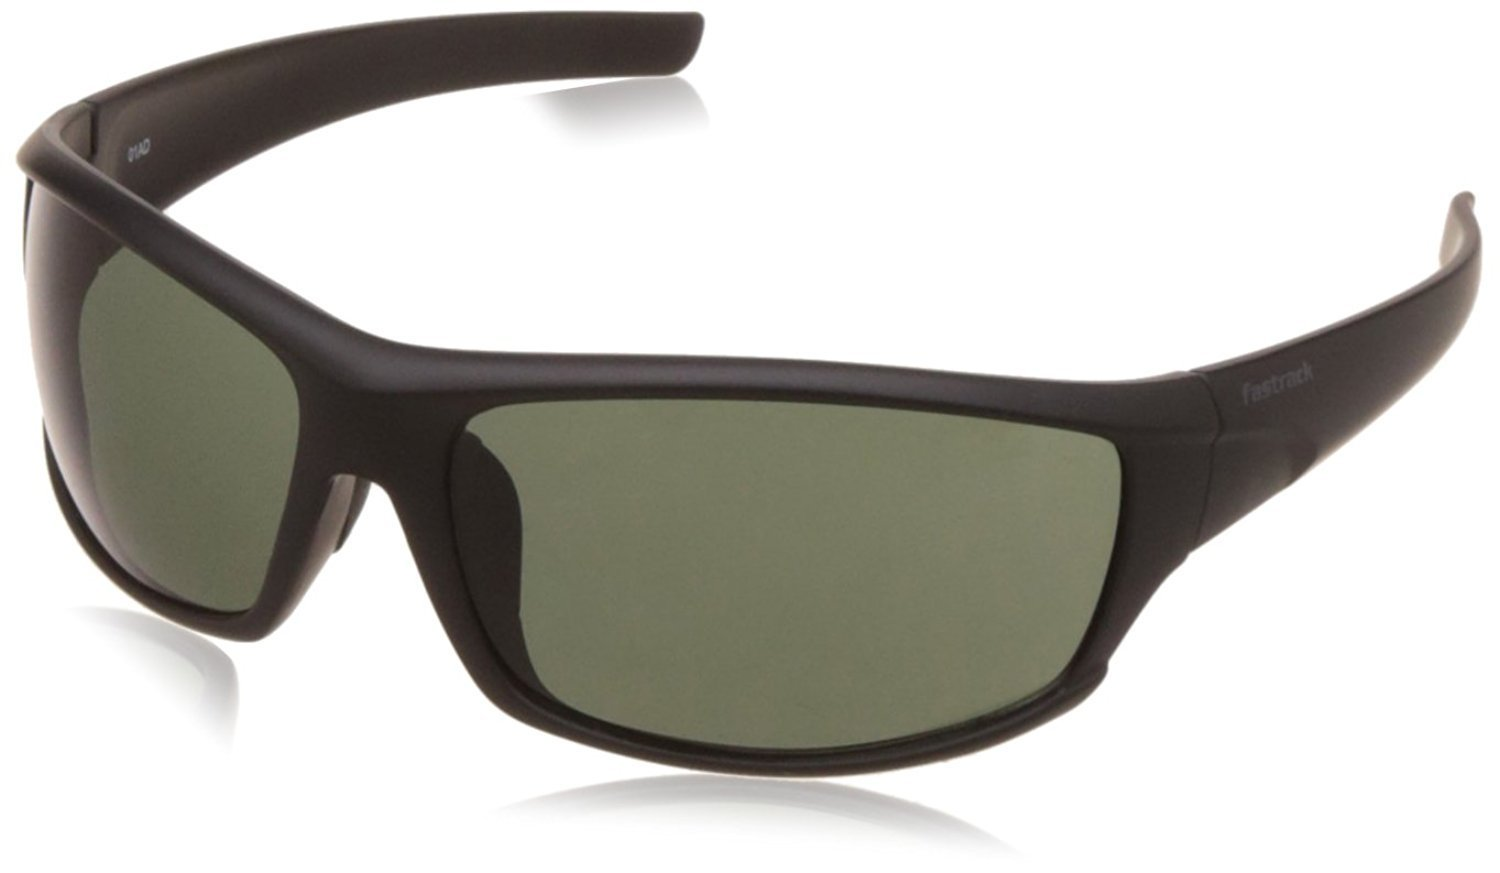 e547e5a8d19d Get Fastrack UV protected Sport Boys Sunglasses at Rs 492